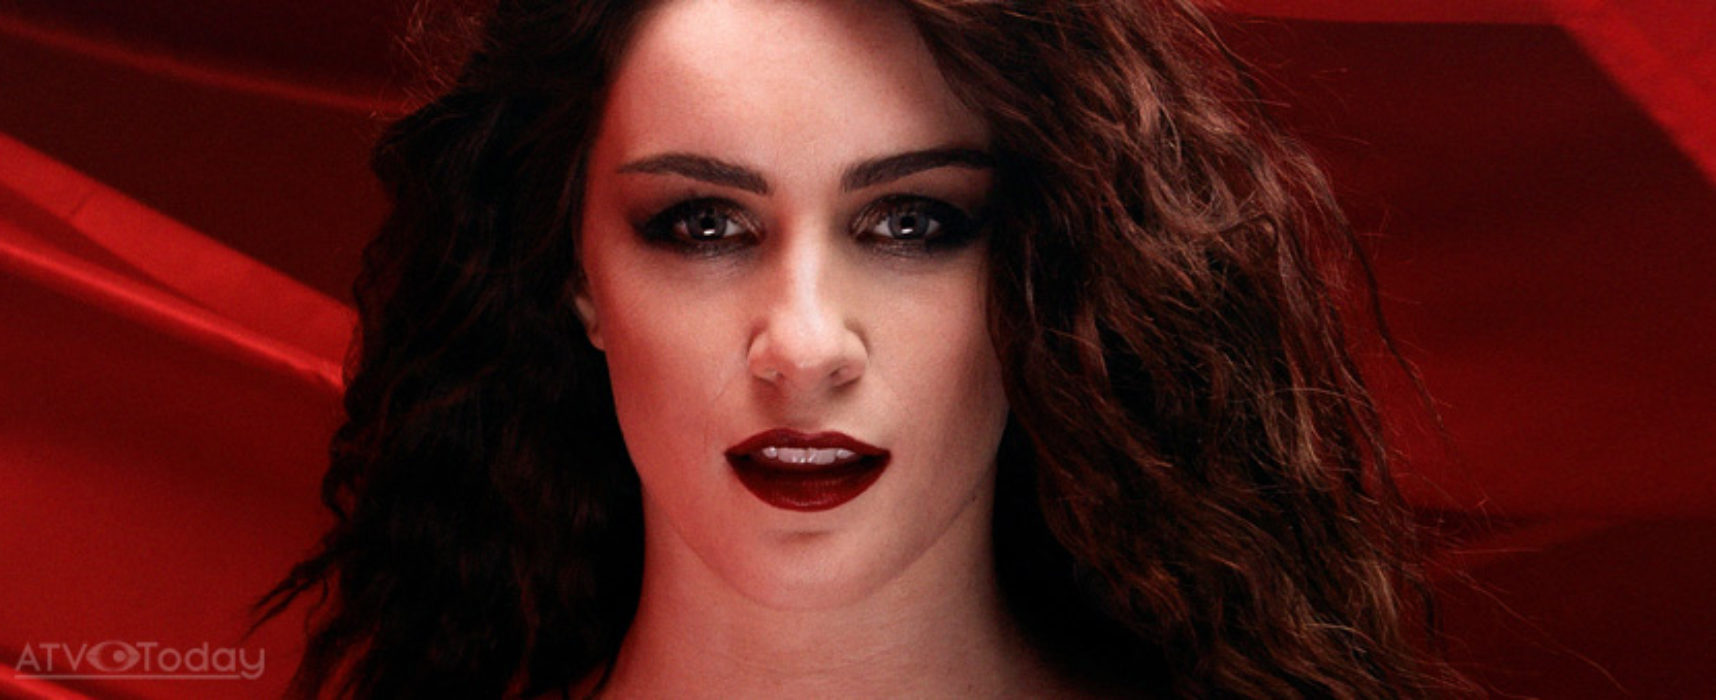 Promo video unleashed for Lucie Jones' Eurovision Entry 'Never Give Up On You'